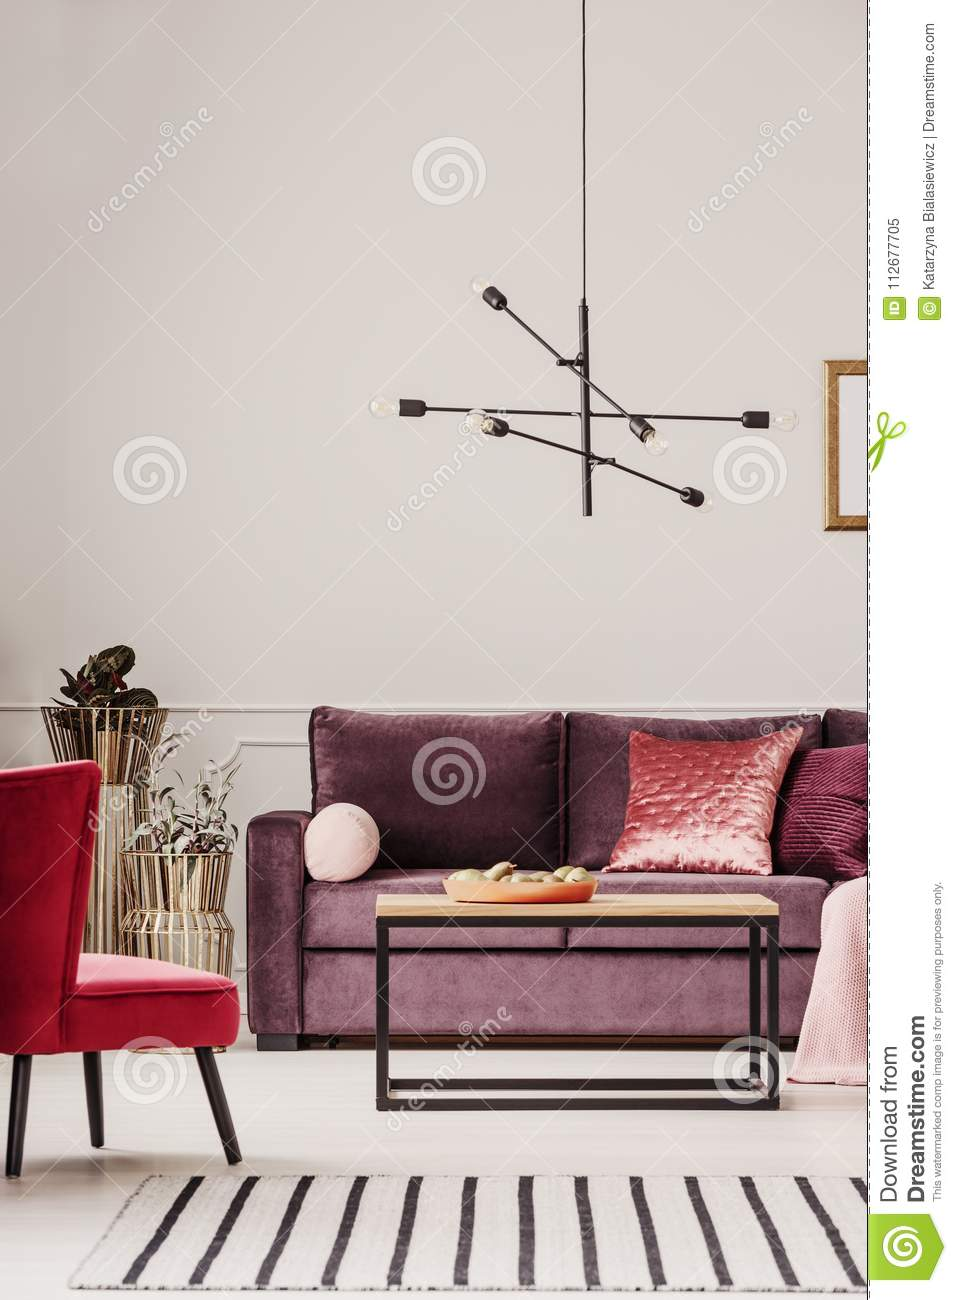 exceptional Red And Purple Living Room Part - 9: Purple living room interior